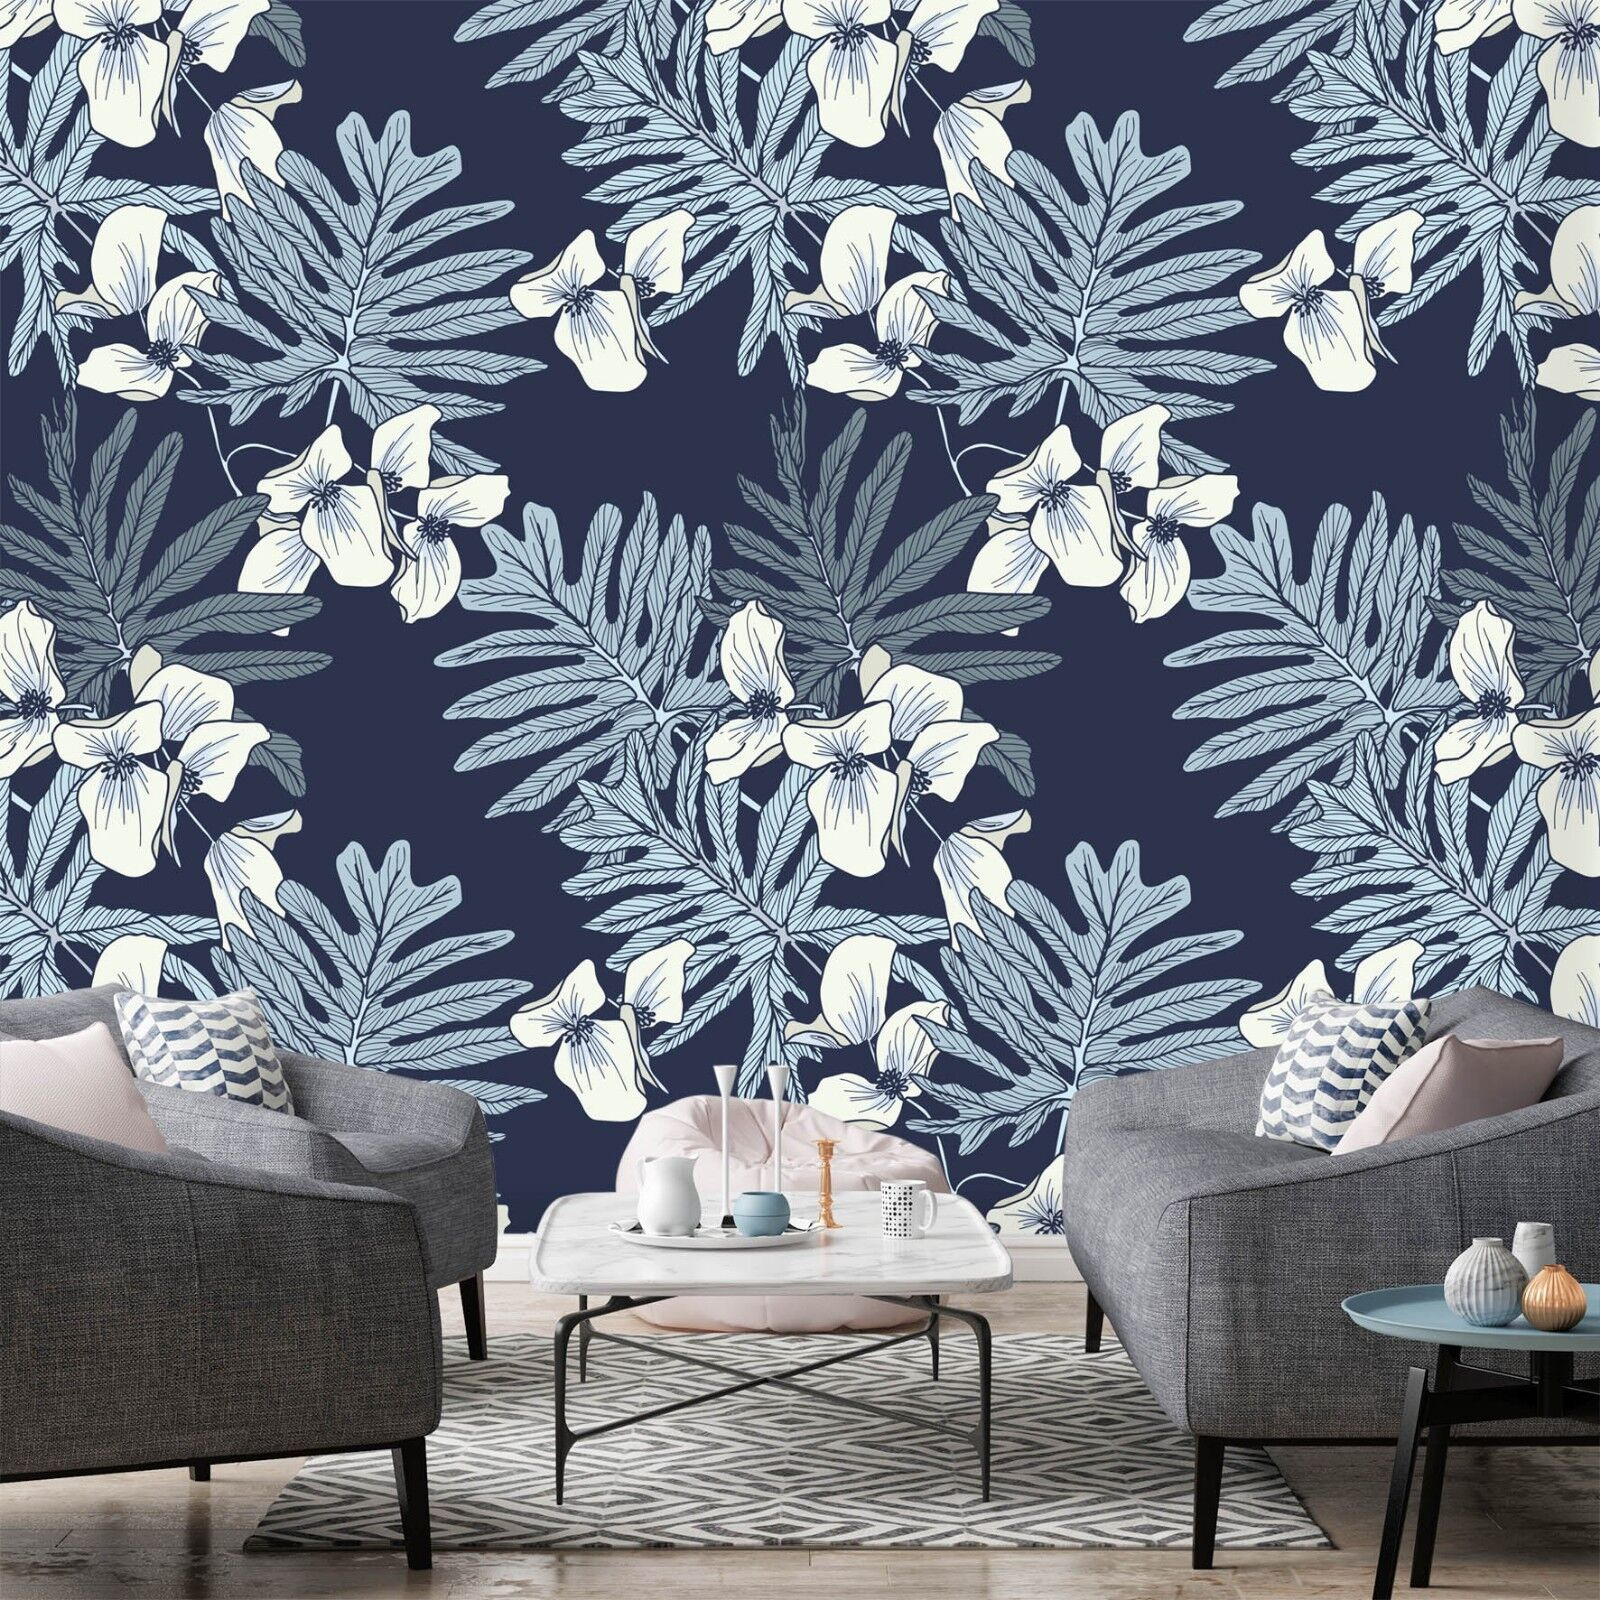 3D Petals bluee Leaves 5 Wall Paper Wall Print Decal Wall Deco Indoor Wall Murals